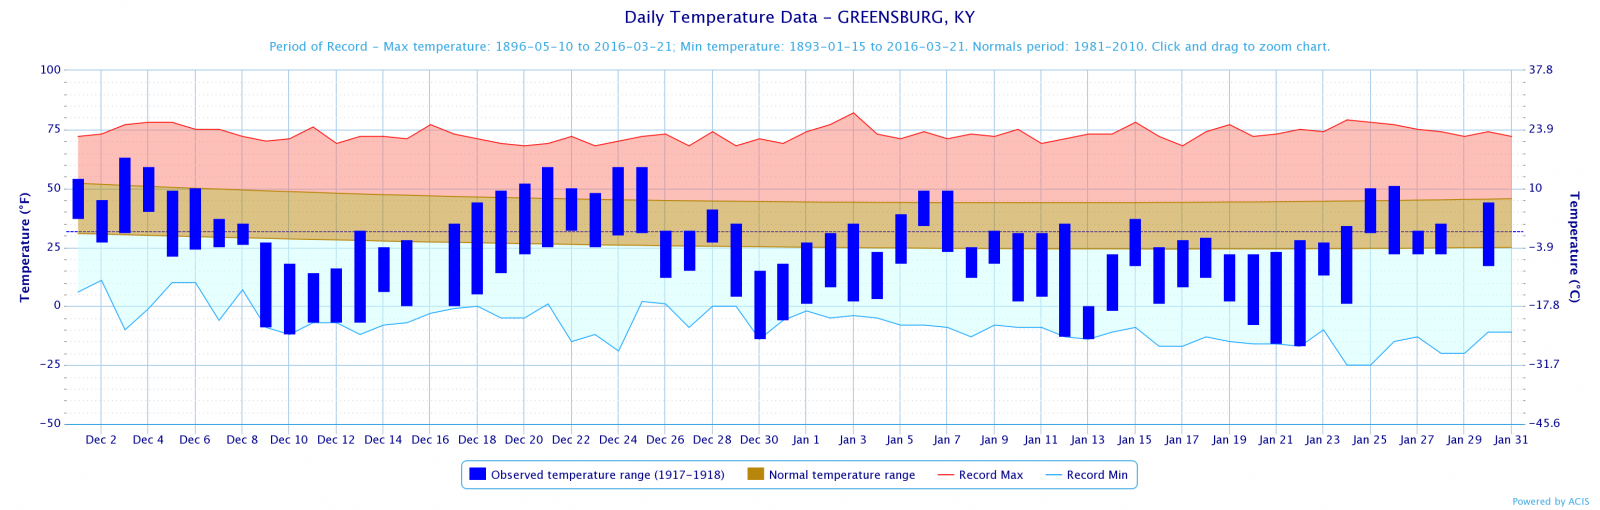 Temperature Plot for Greensburg, December 1917-1918